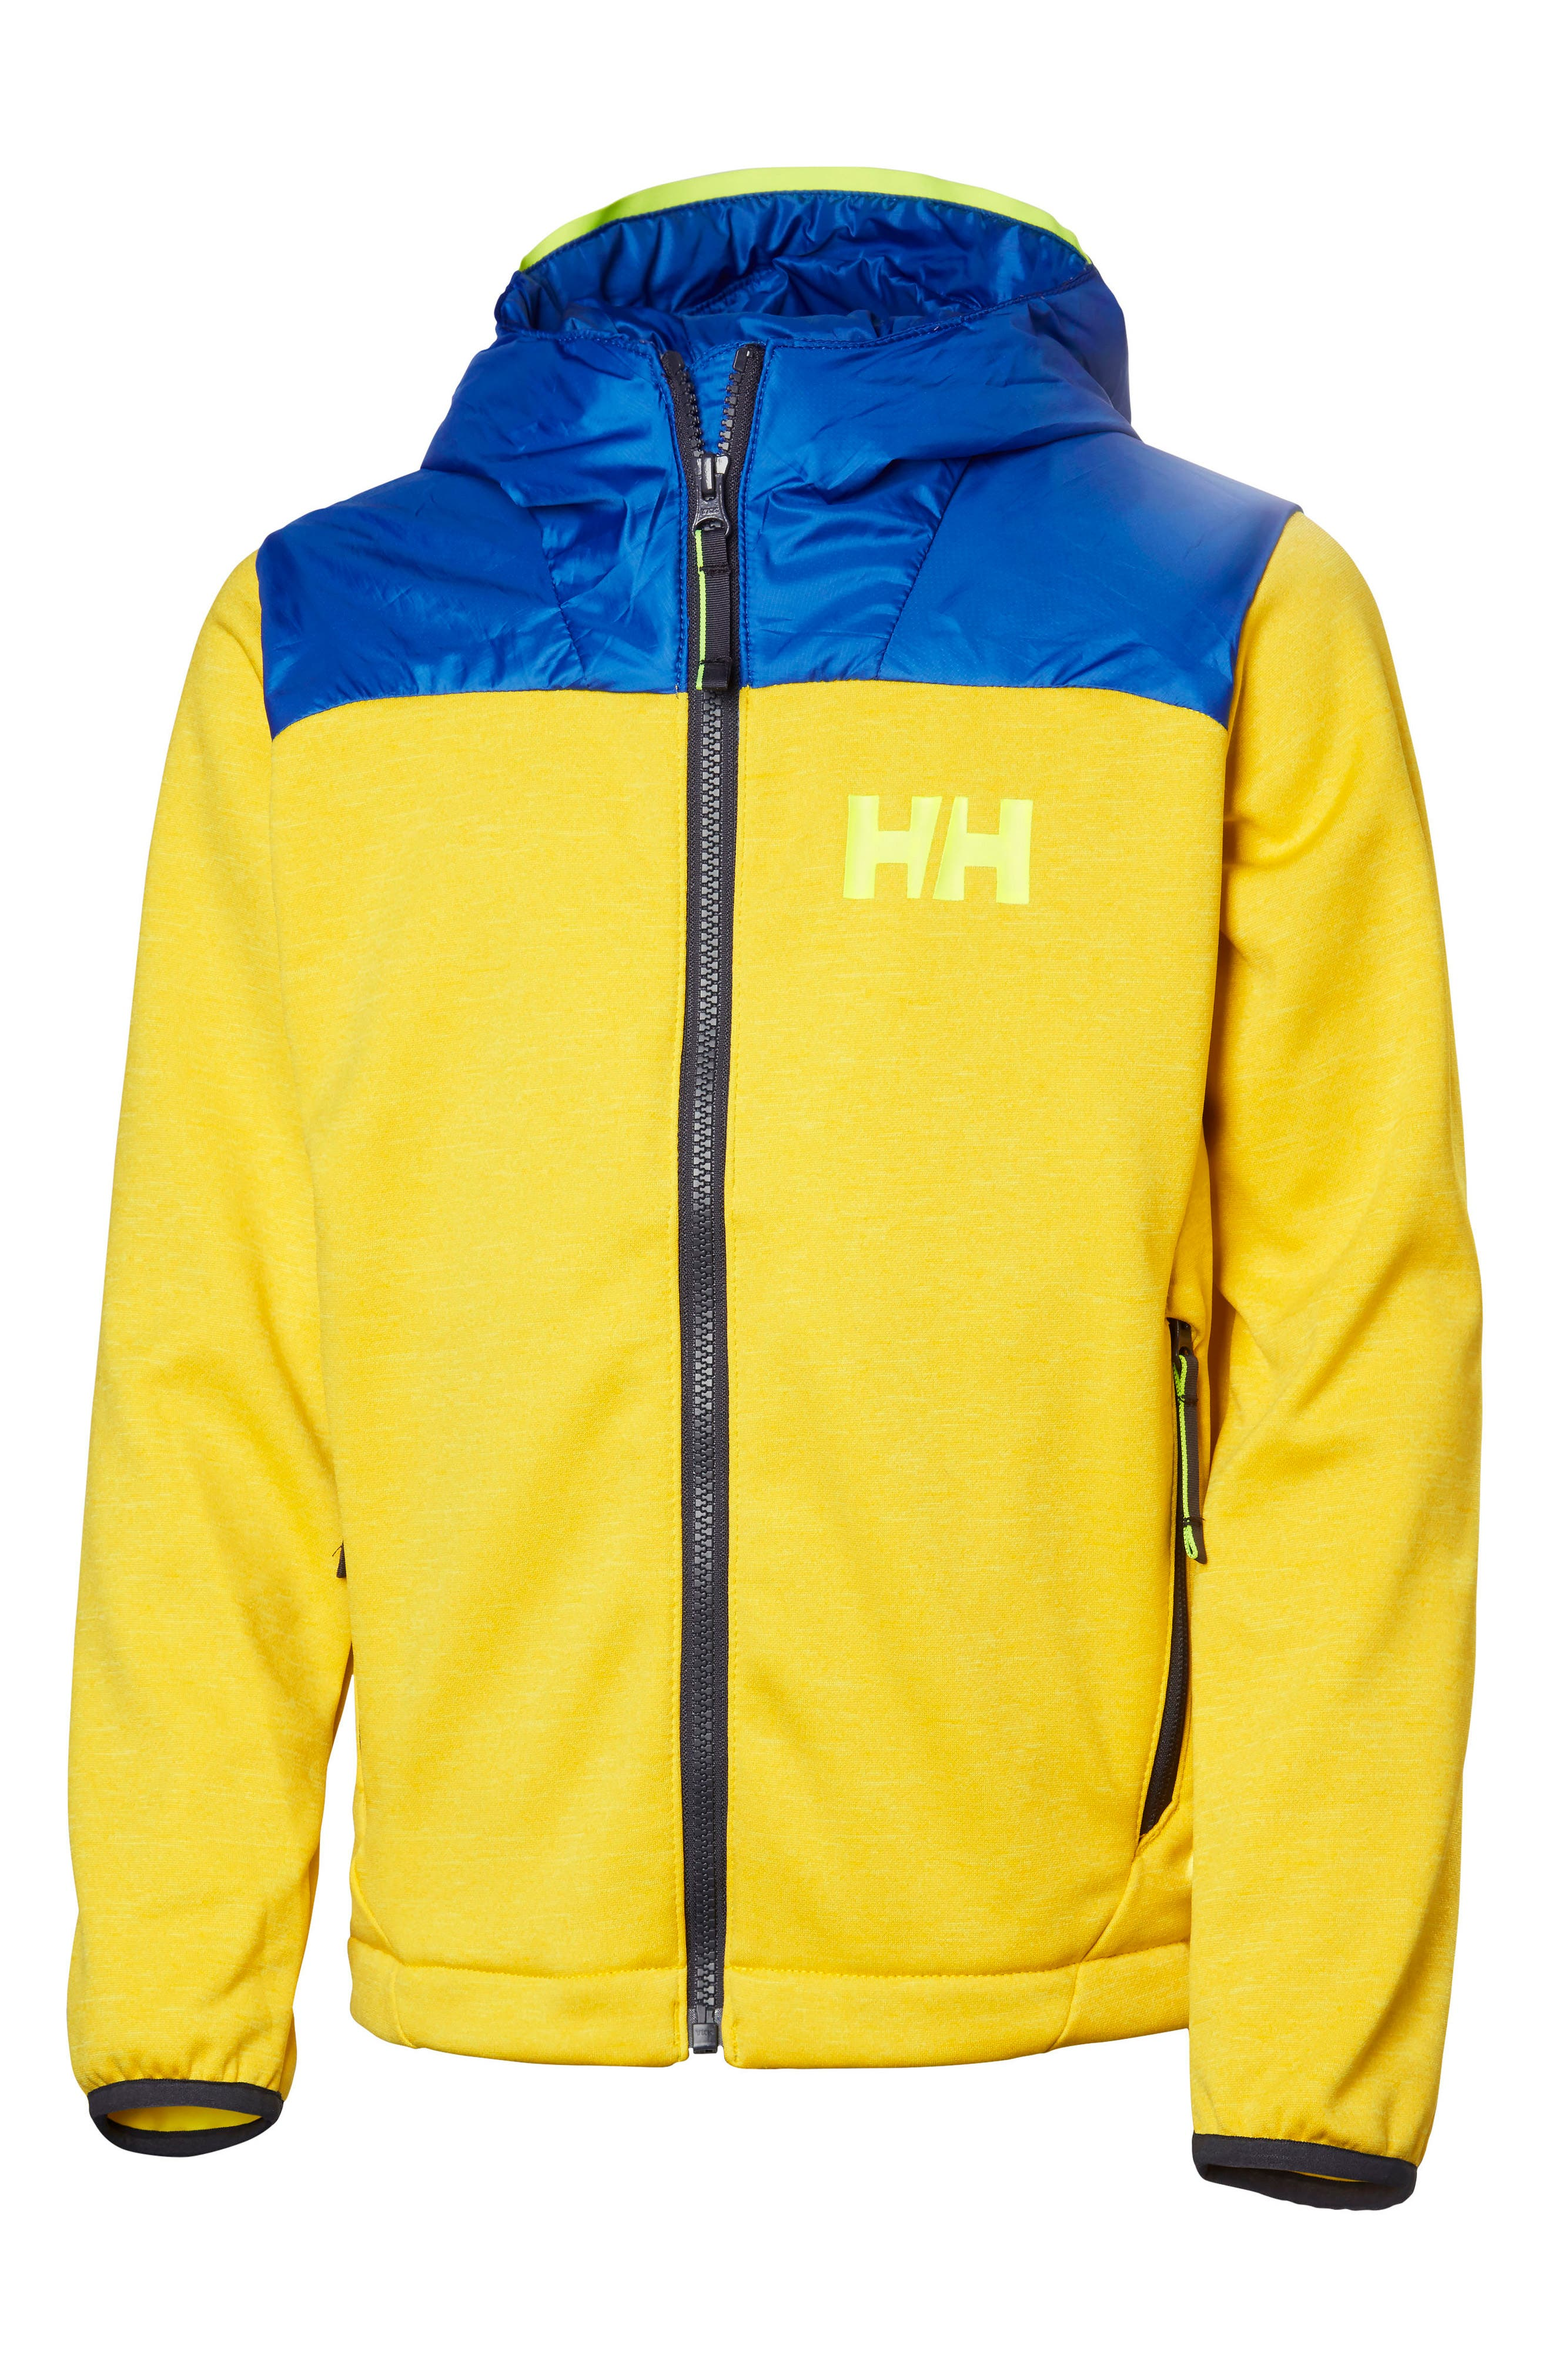 Hybrid Midlayer Jacket,                             Main thumbnail 1, color,                             Sulphur